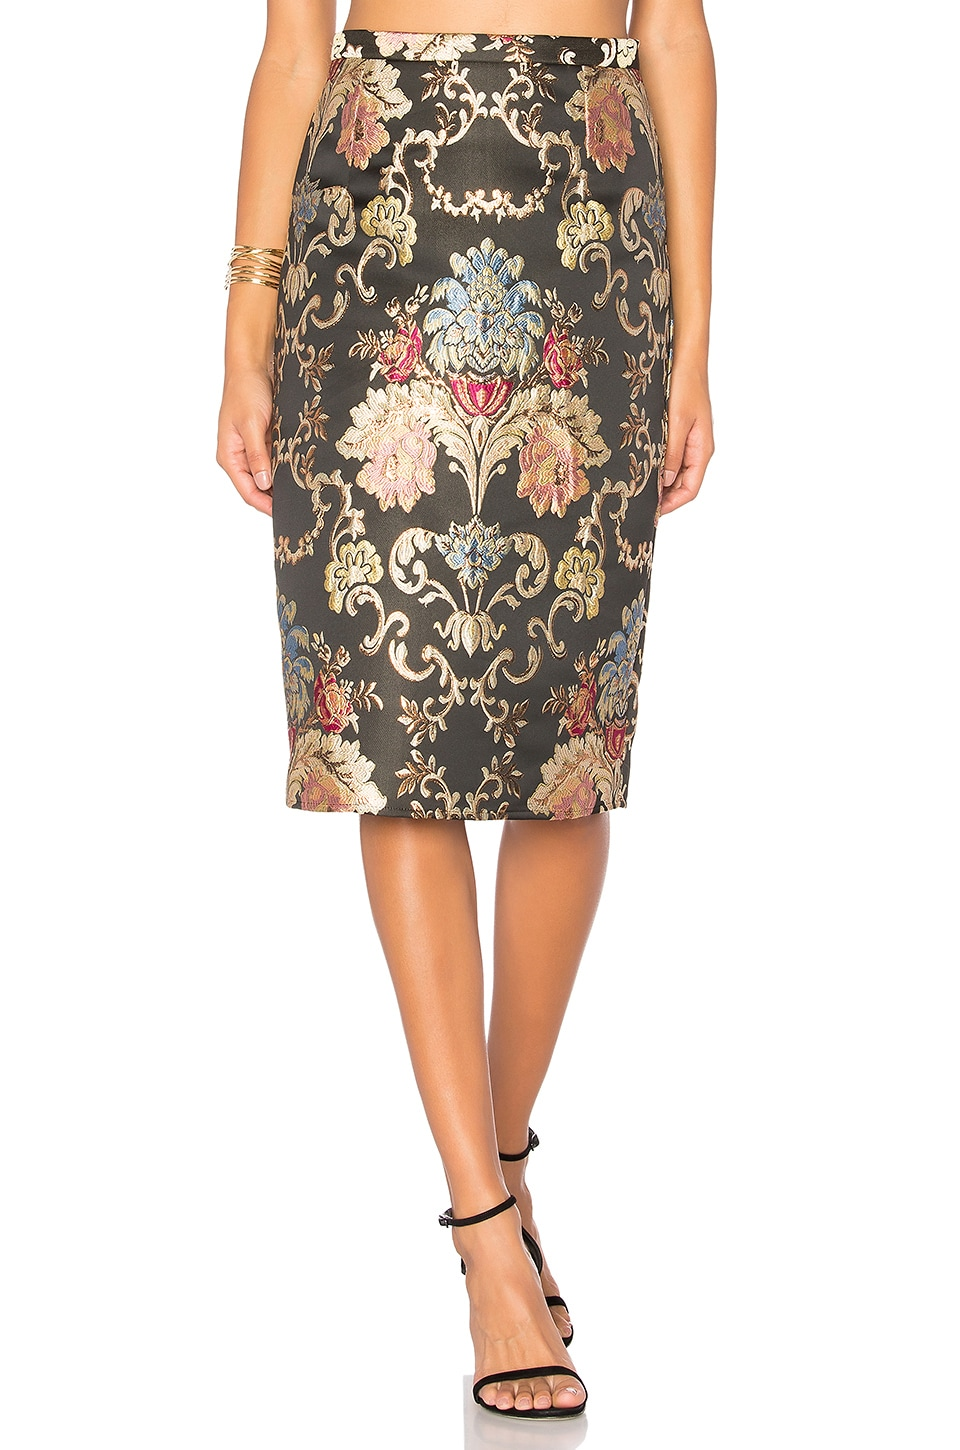 LPA Skirt 116 in Floral Jacquard